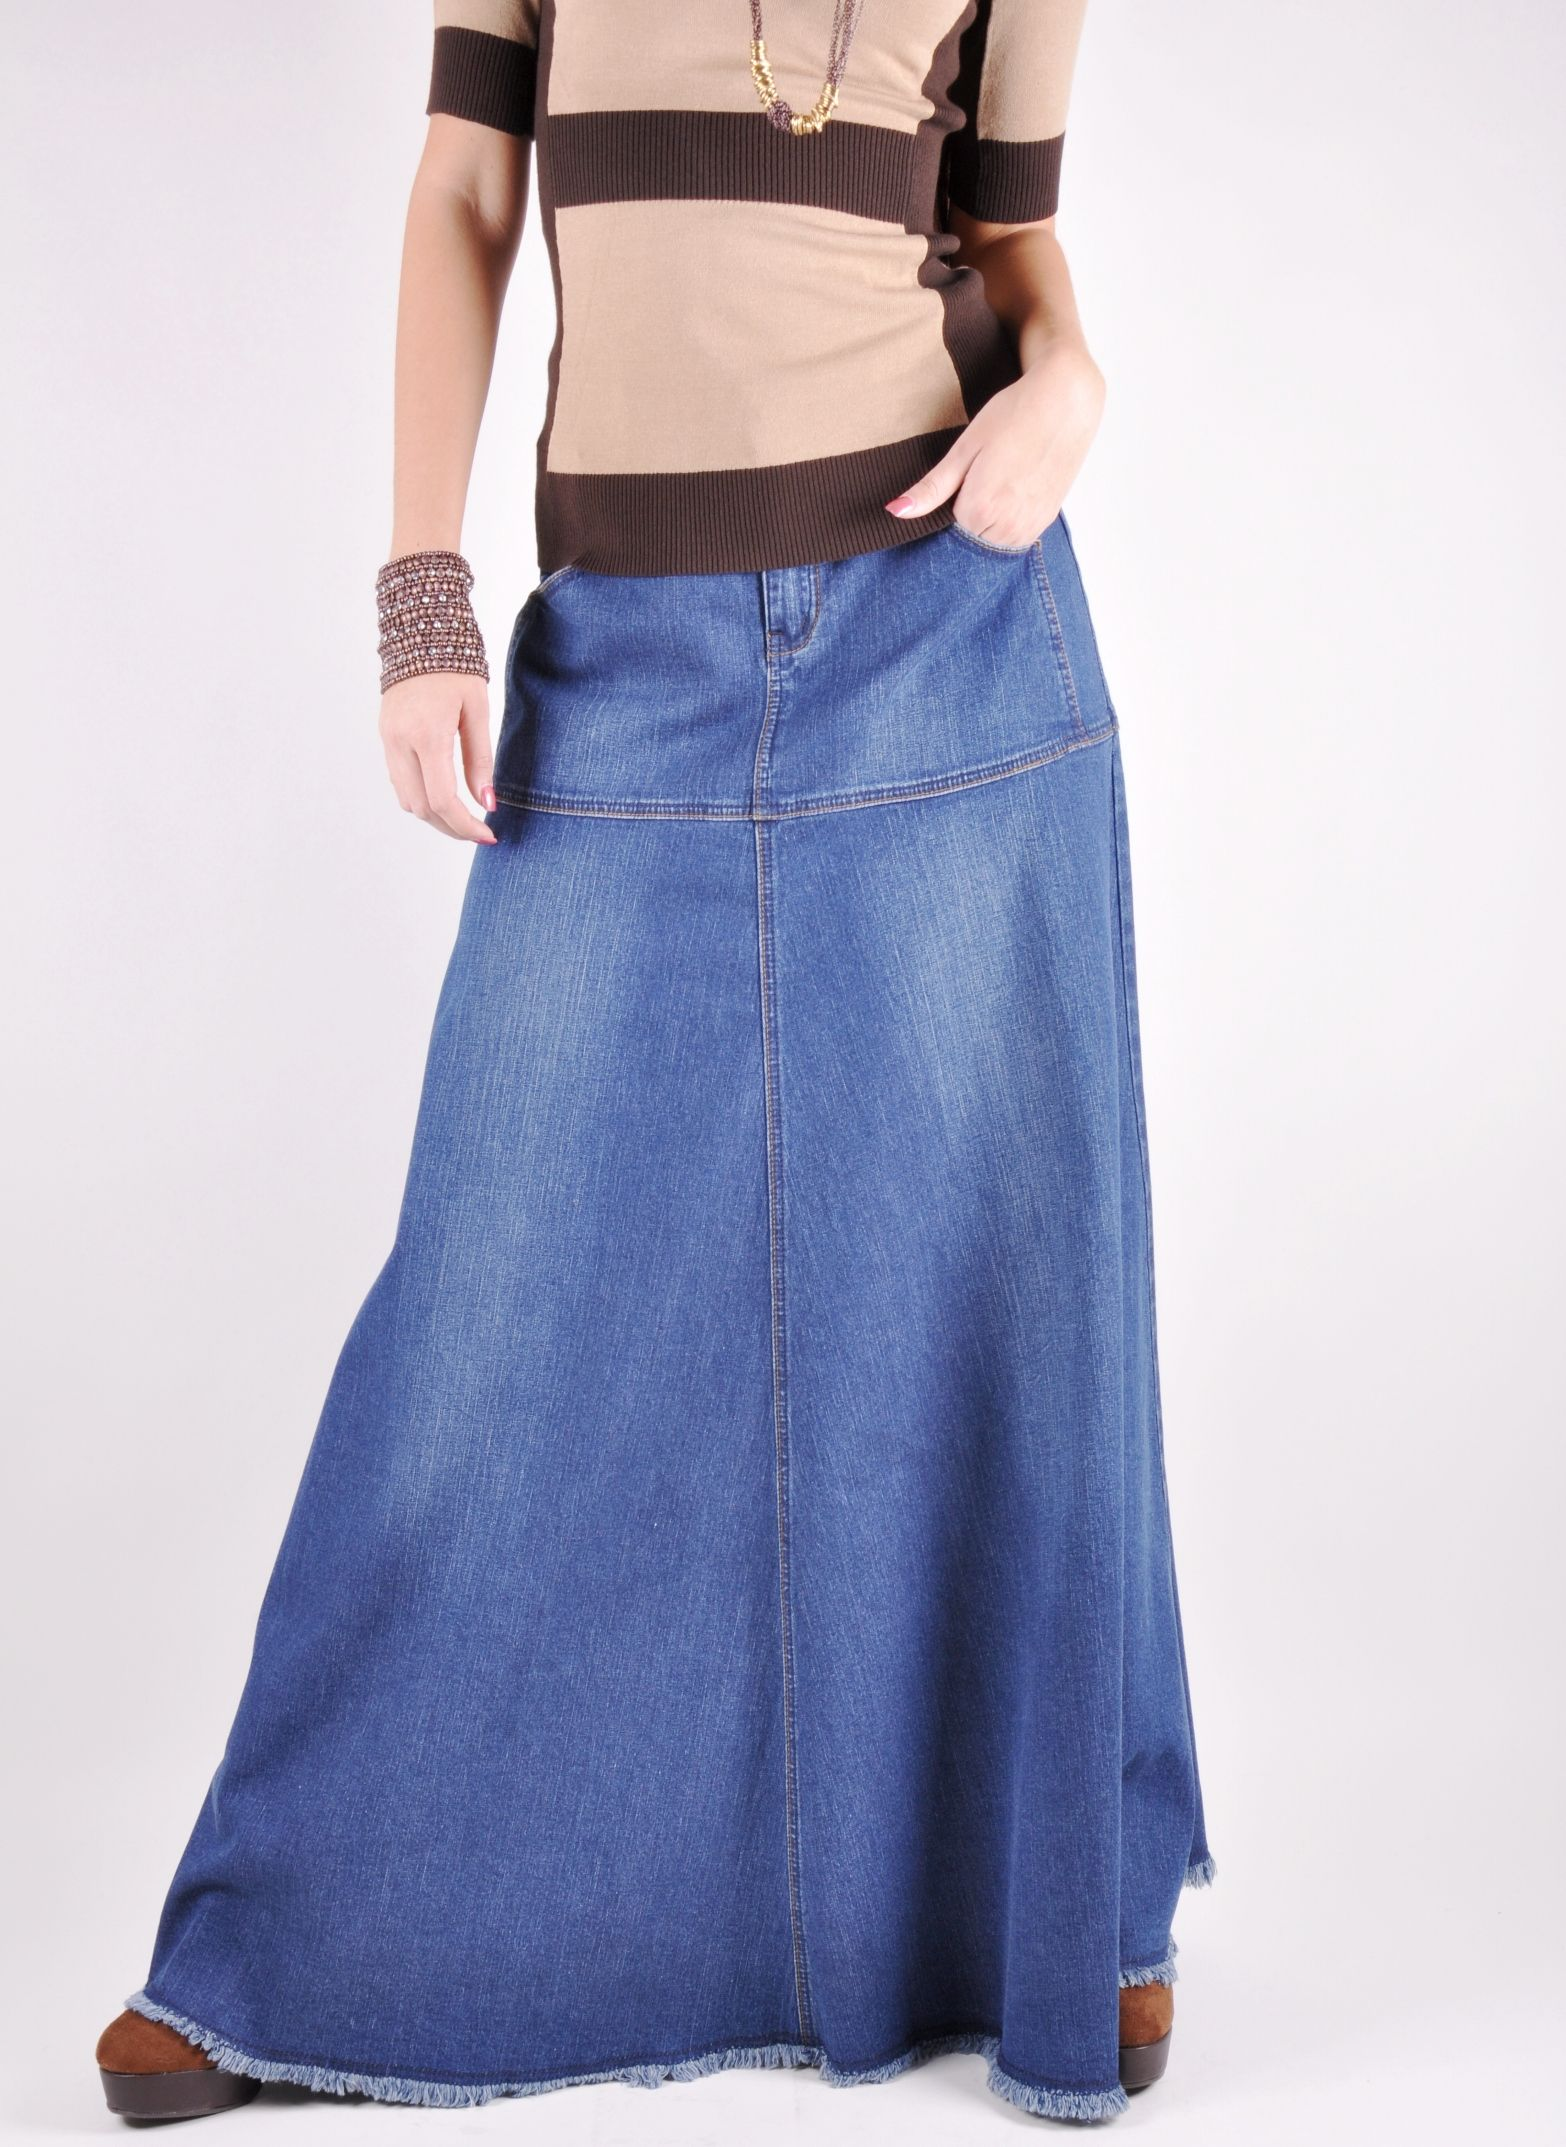 Long cute denim skirts advise to wear for autumn in 2019